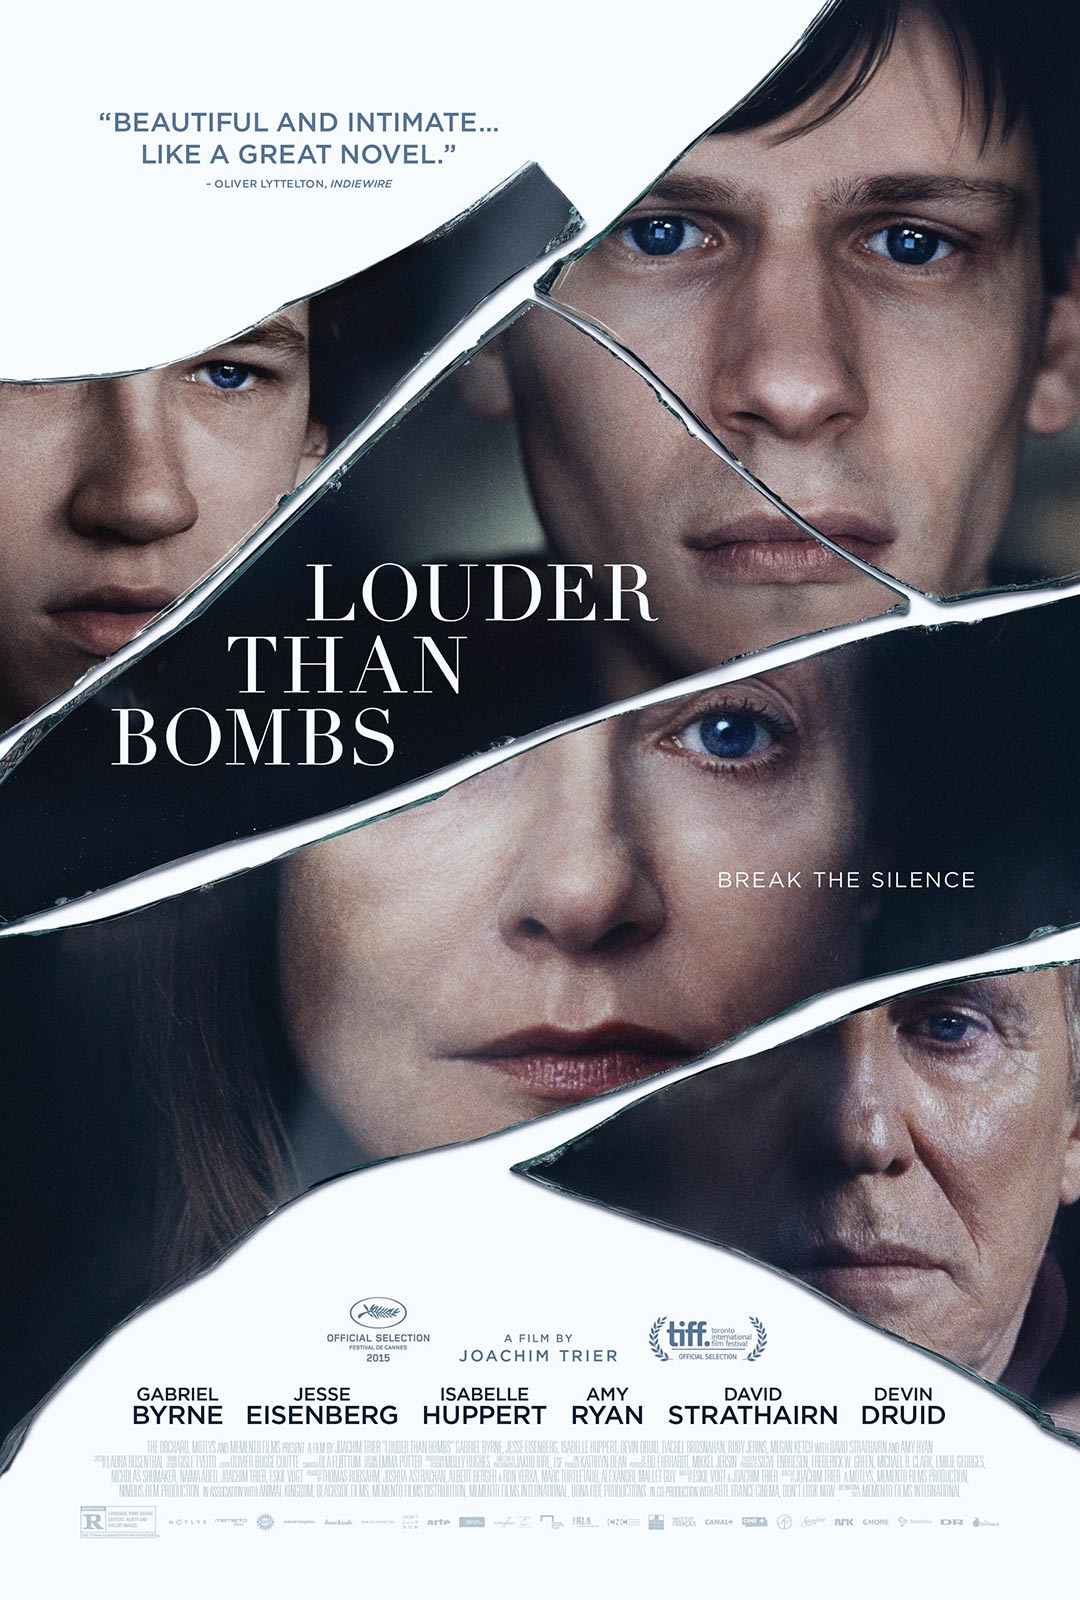 Louder Than Bombs 2016 YeniFragman-2